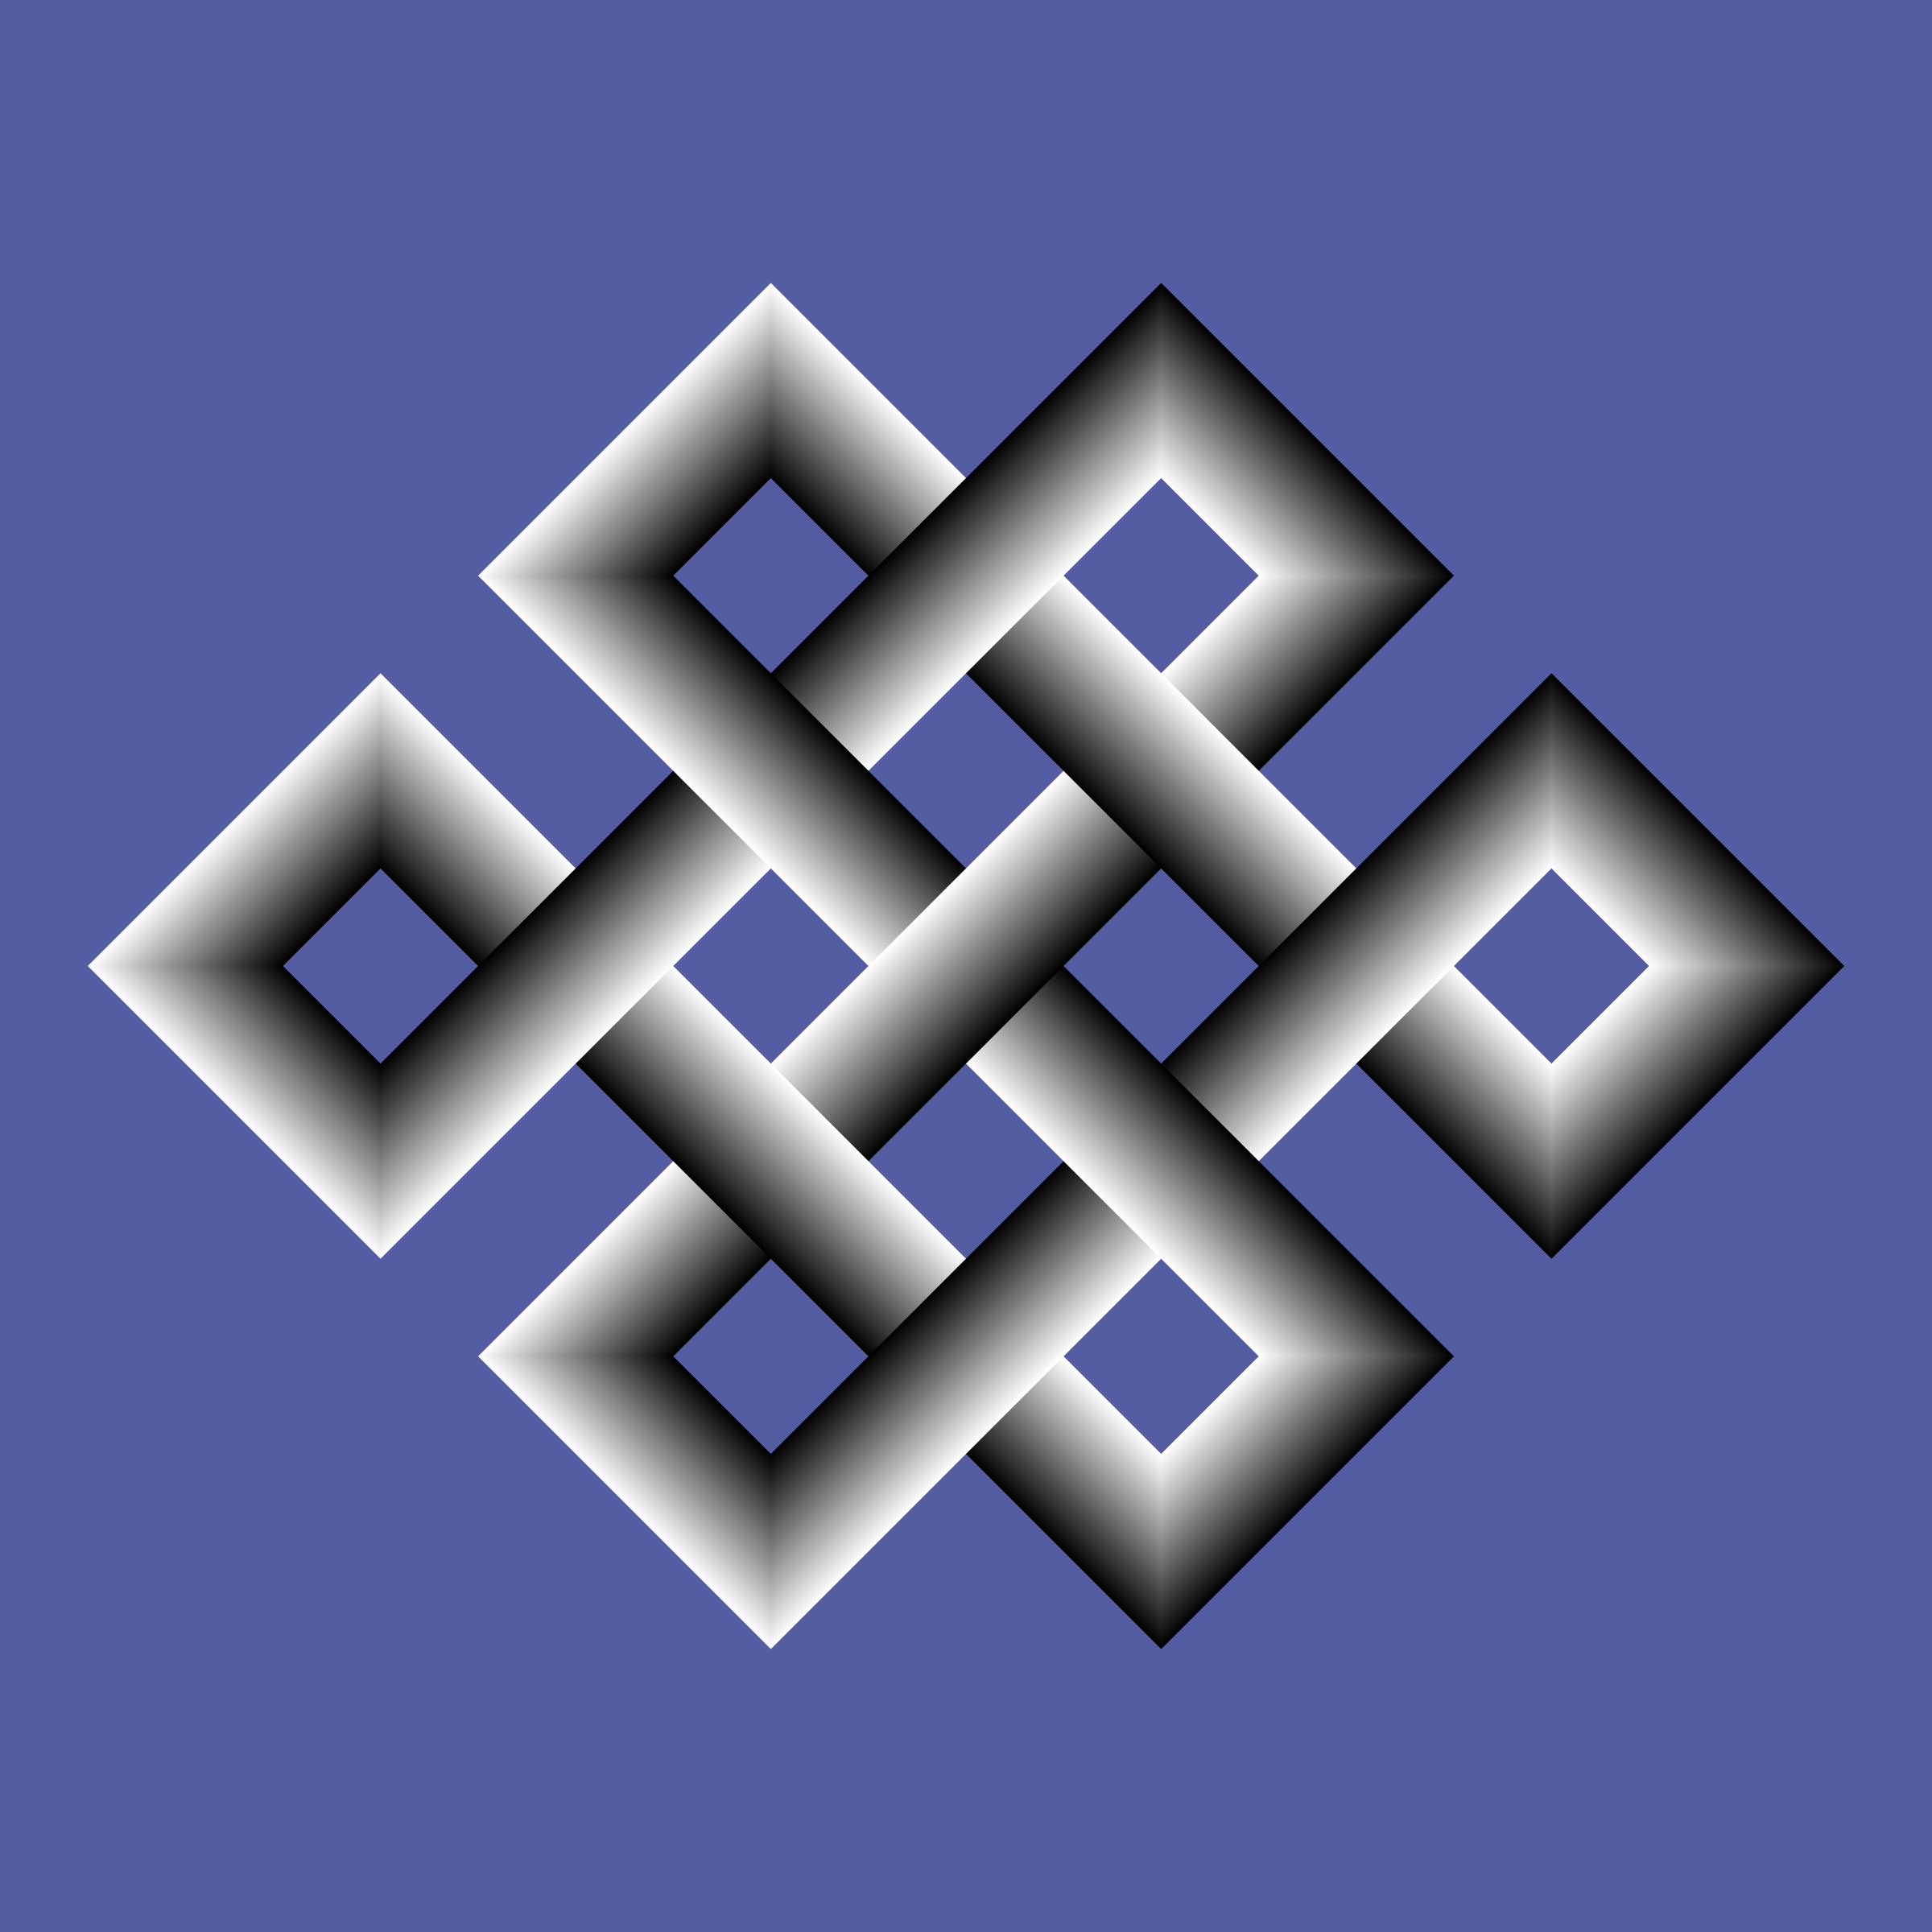 endless knot by Lazur URH